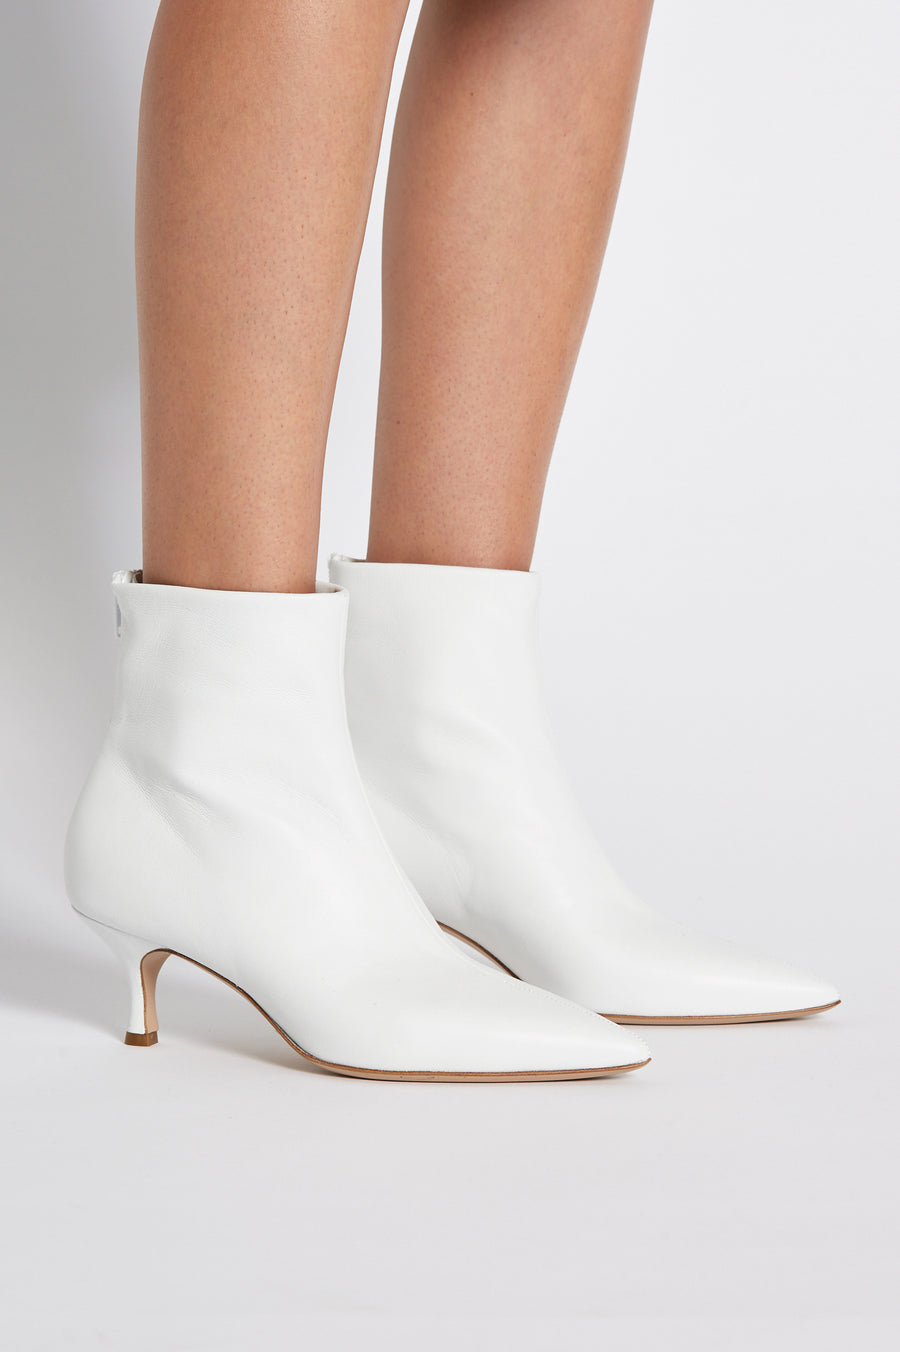 Leather Ankle Boot, Pointed Toe. Heel height approx 2.3 inches. Made in Italy, Color White